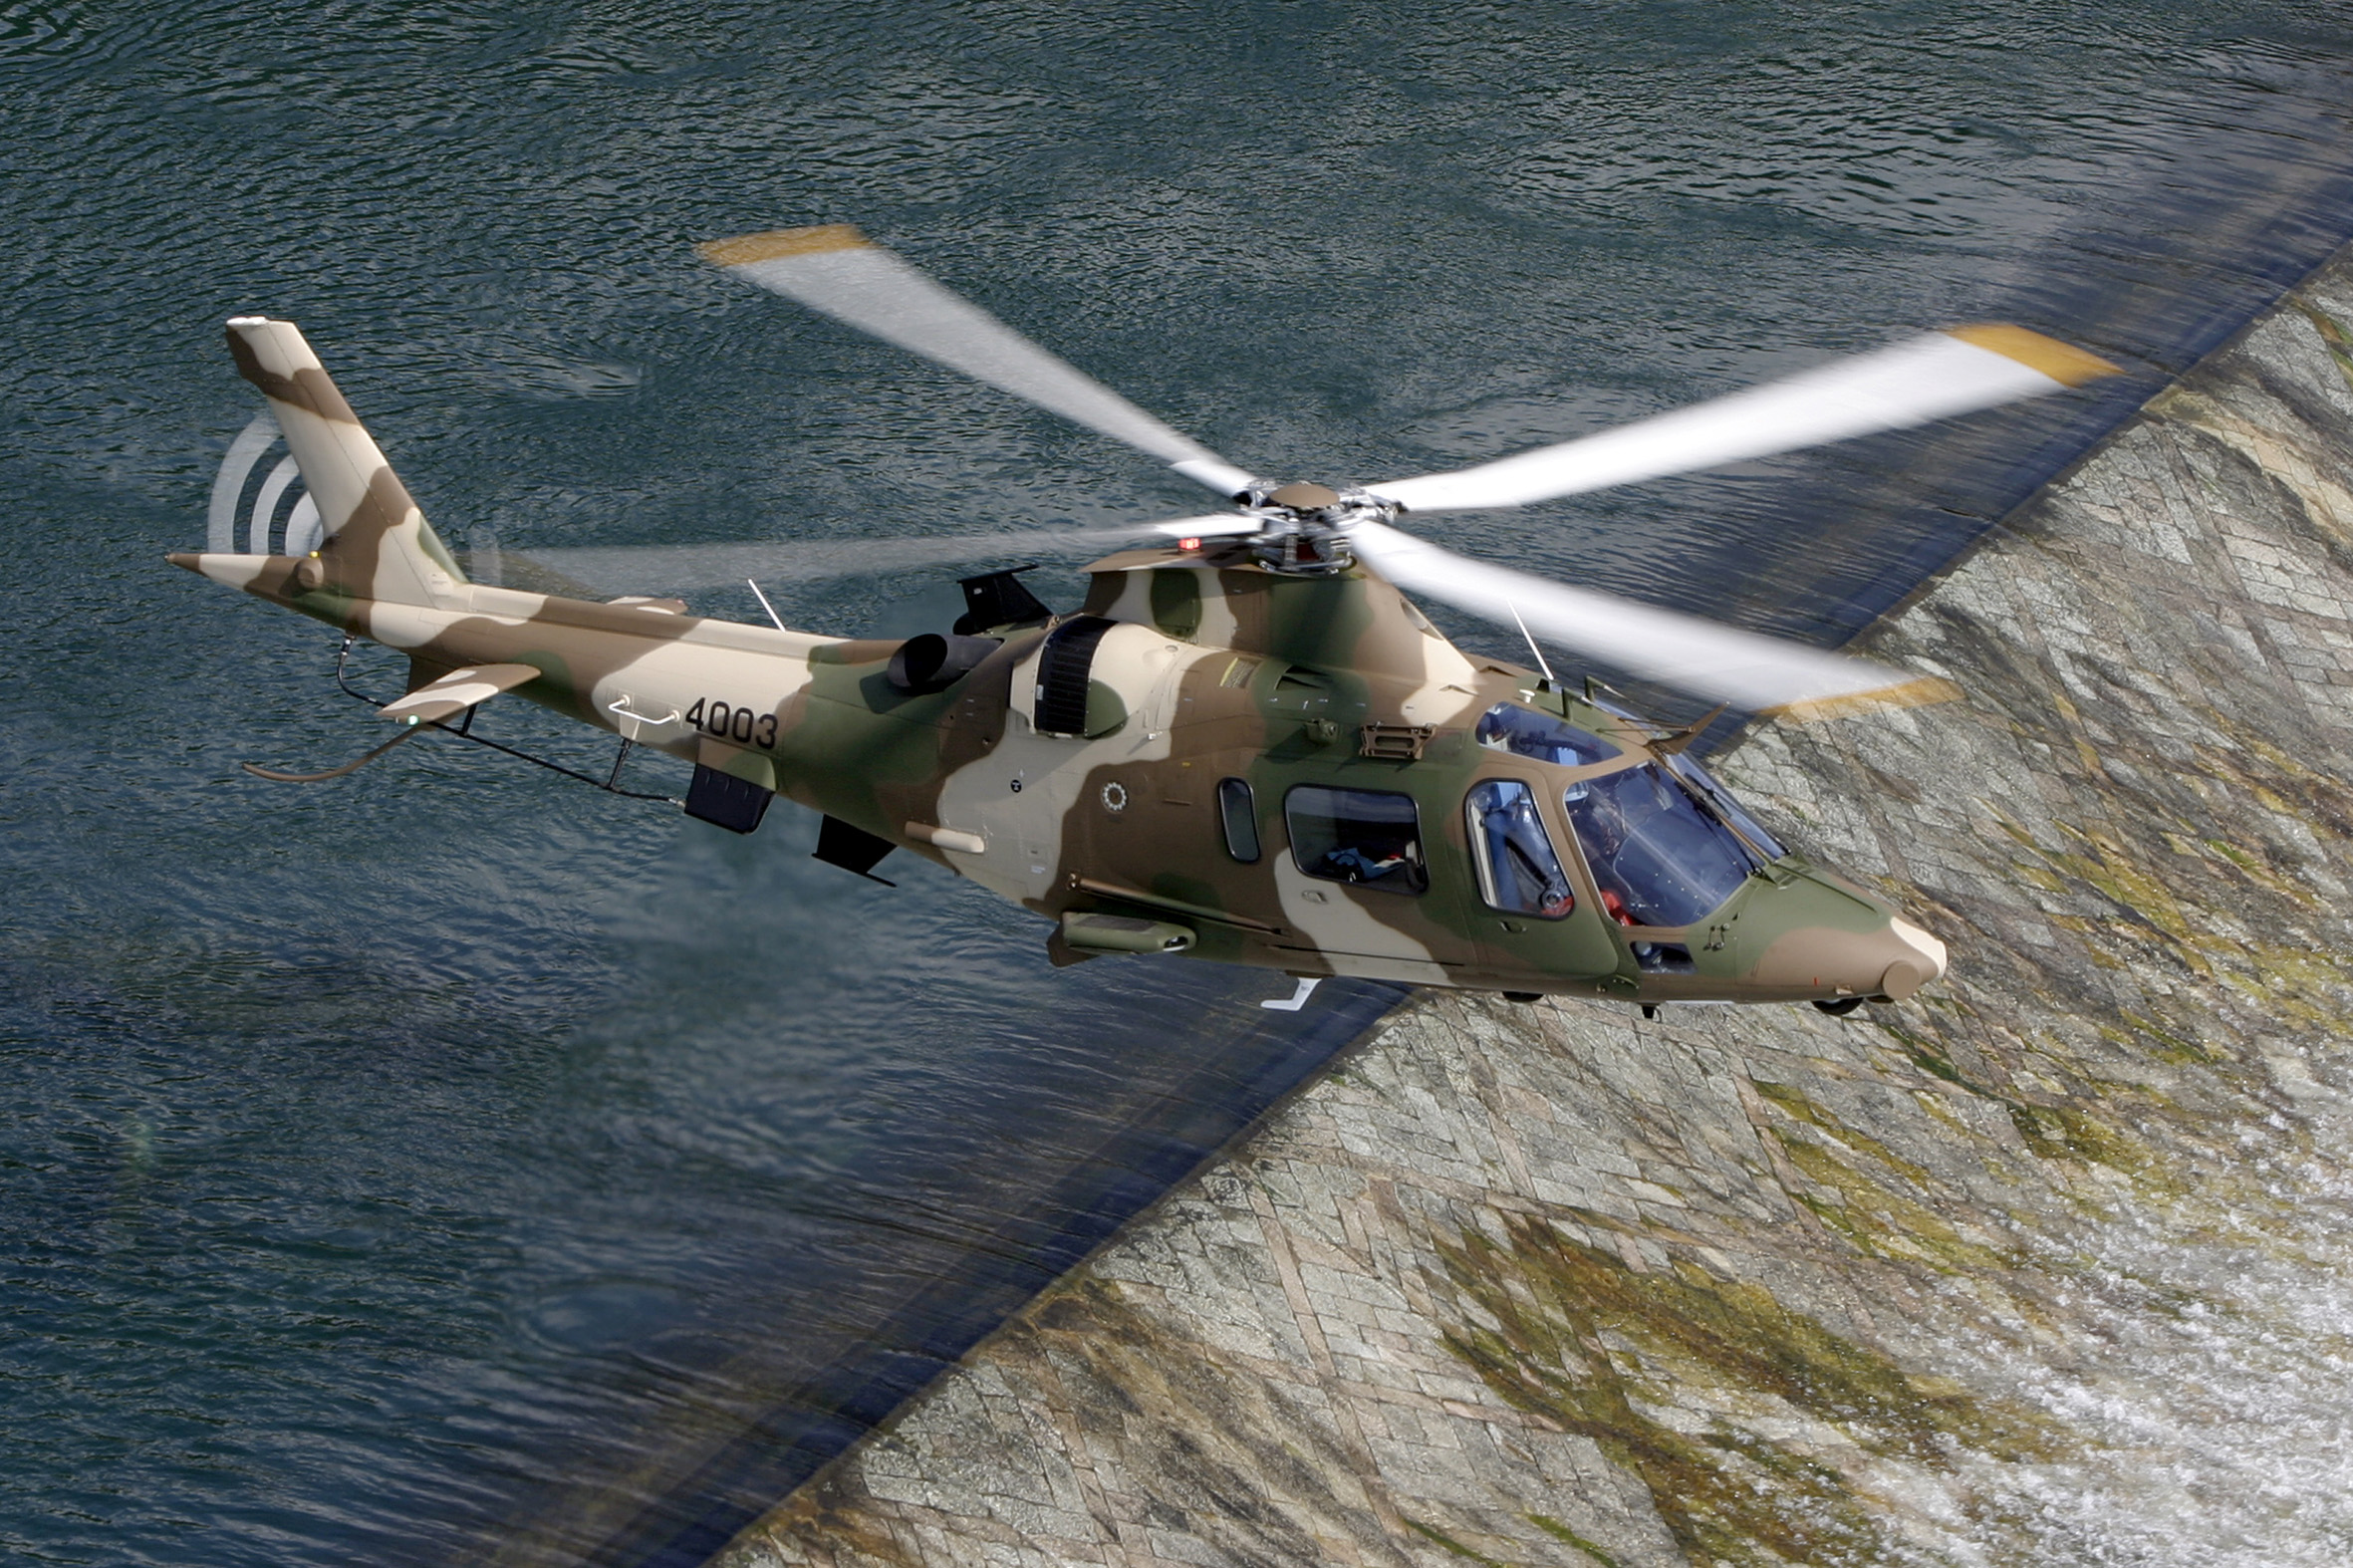 AgustaWestland AW109 Wallpapers